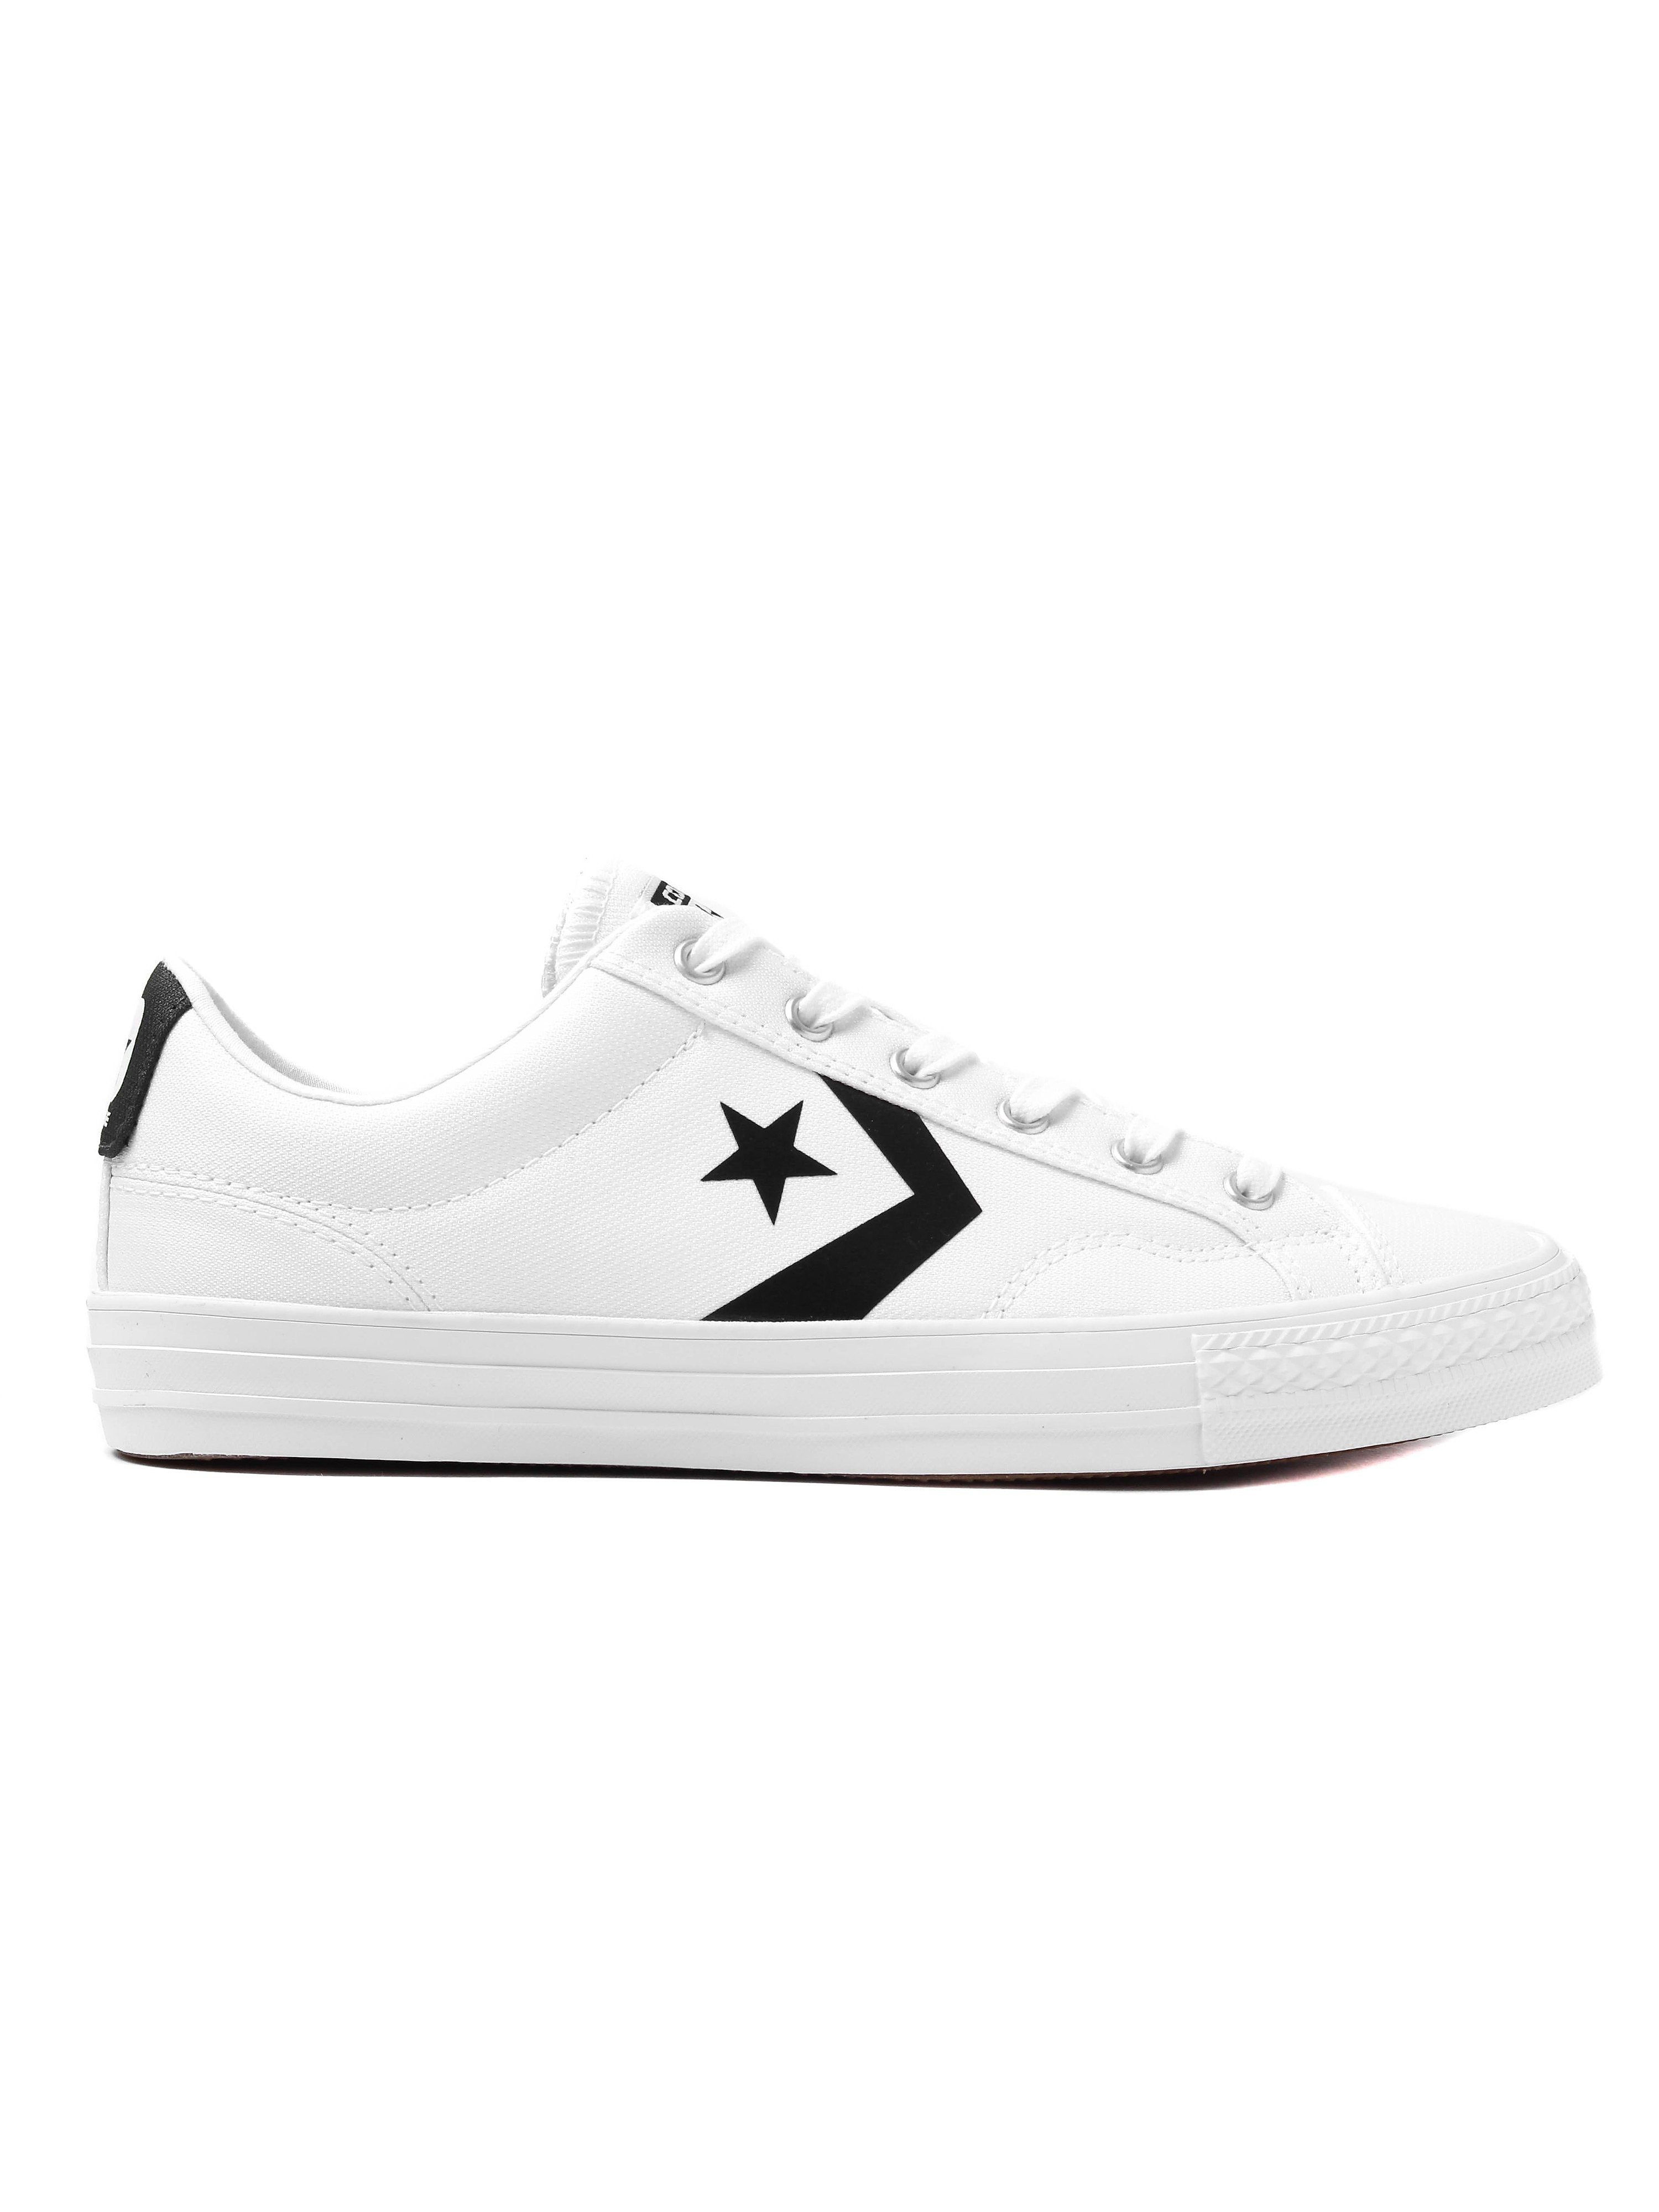 Converse Men's Star Player OX Trainers - White